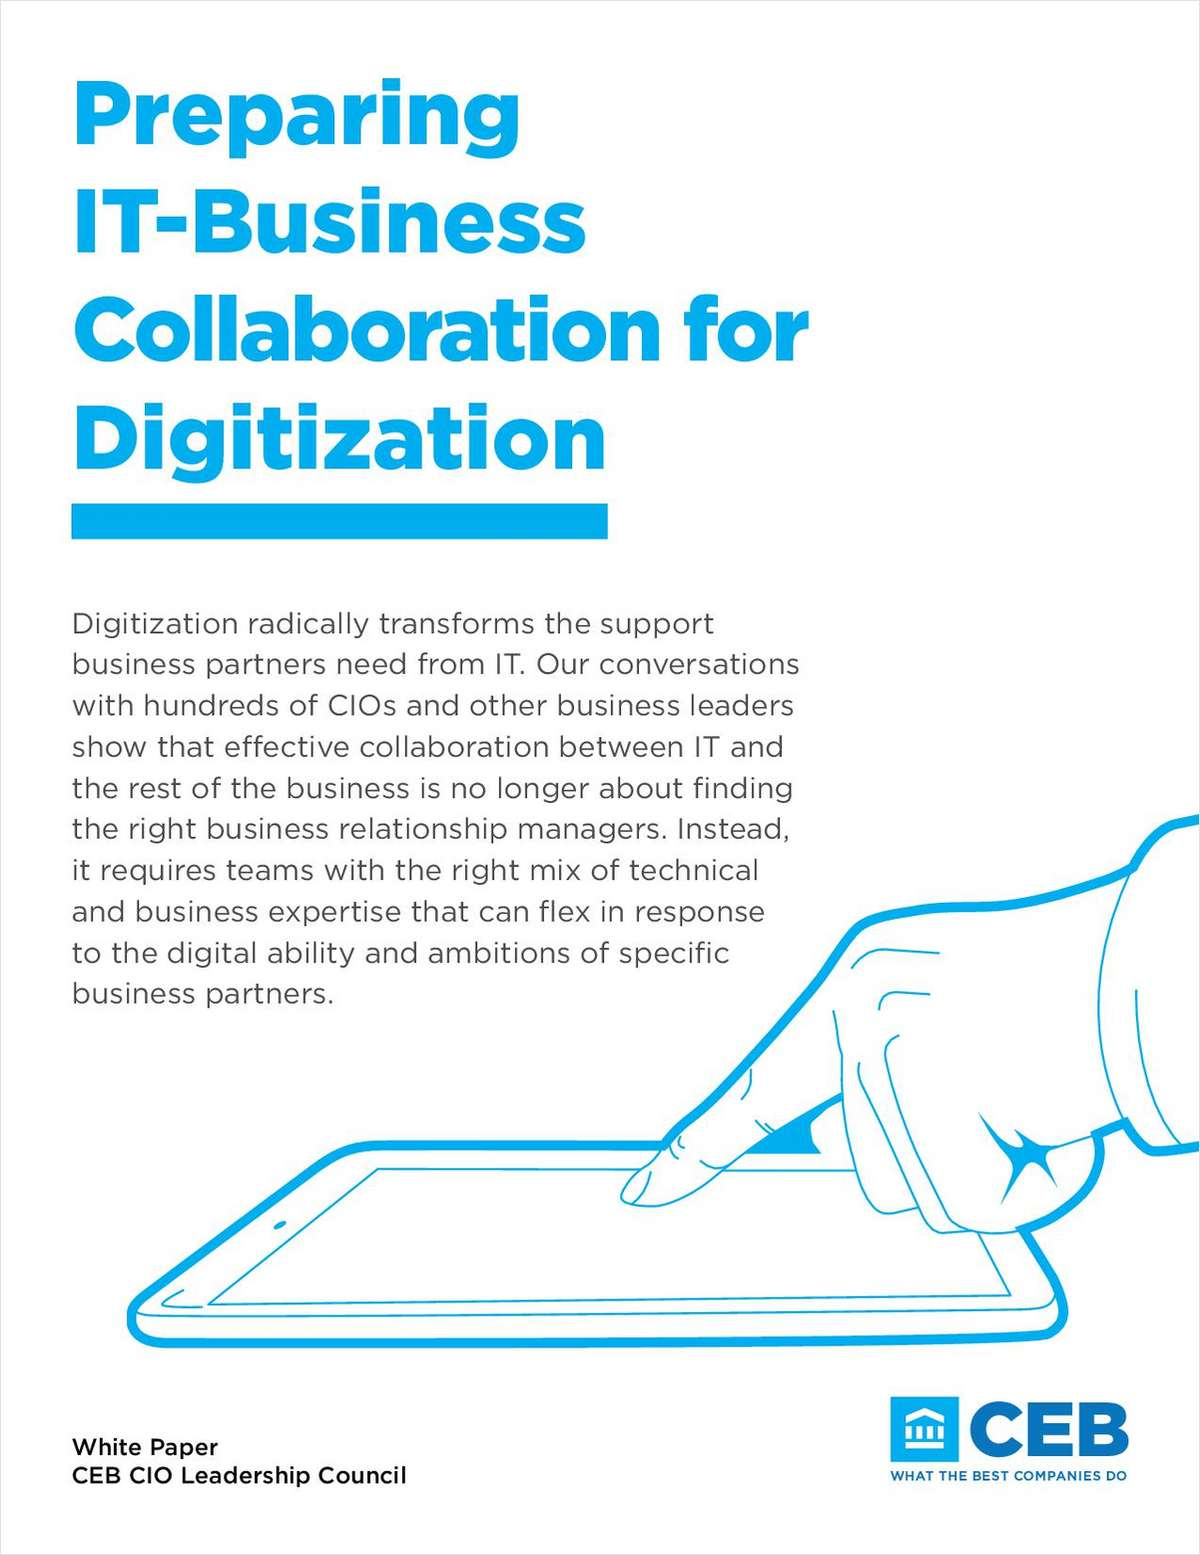 Preparing IT-Business Collaboration for Digitization